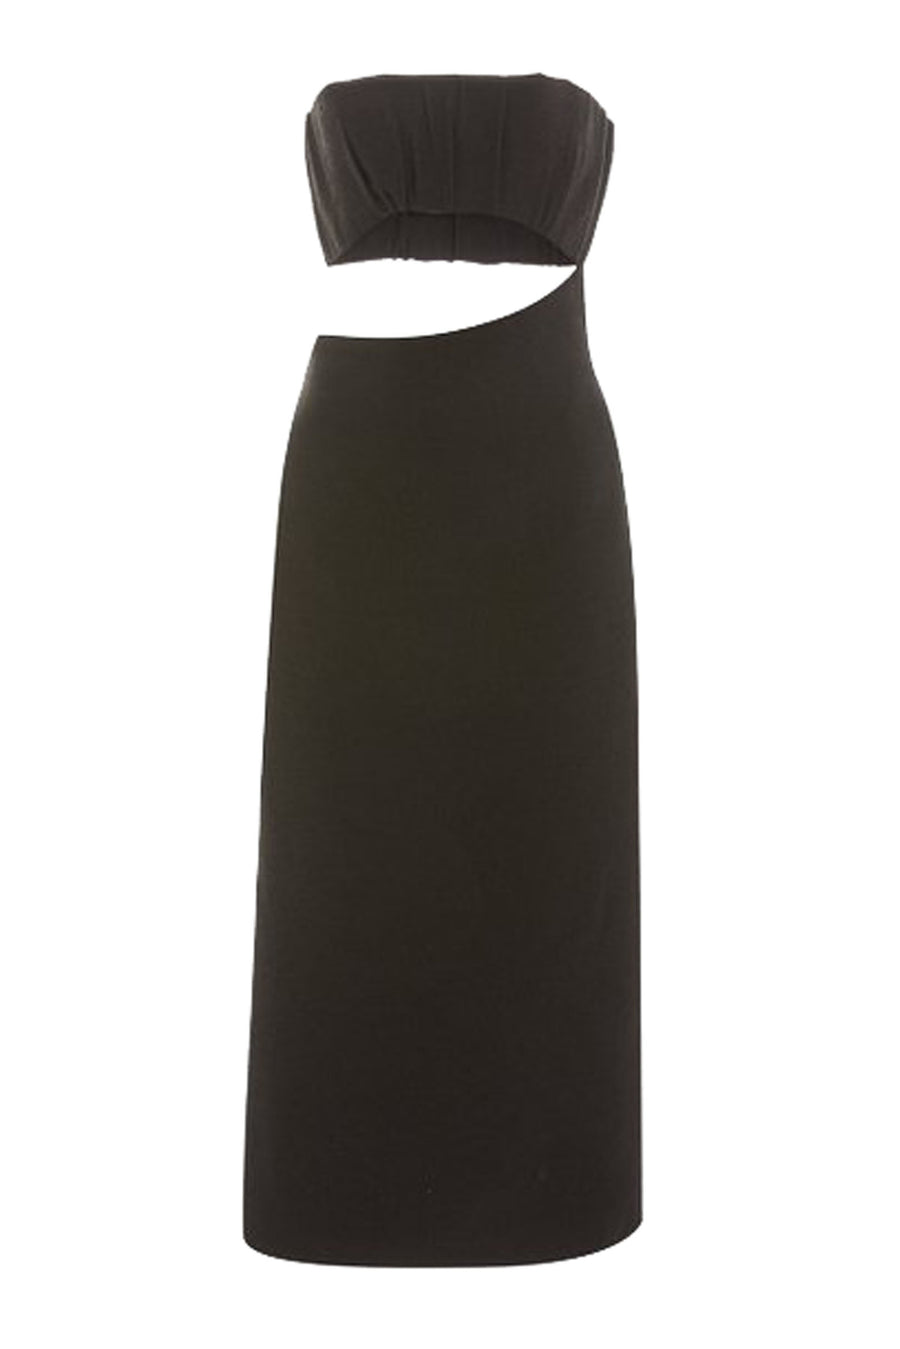 Sir Yves Strapless Dress in Black from The New Trend